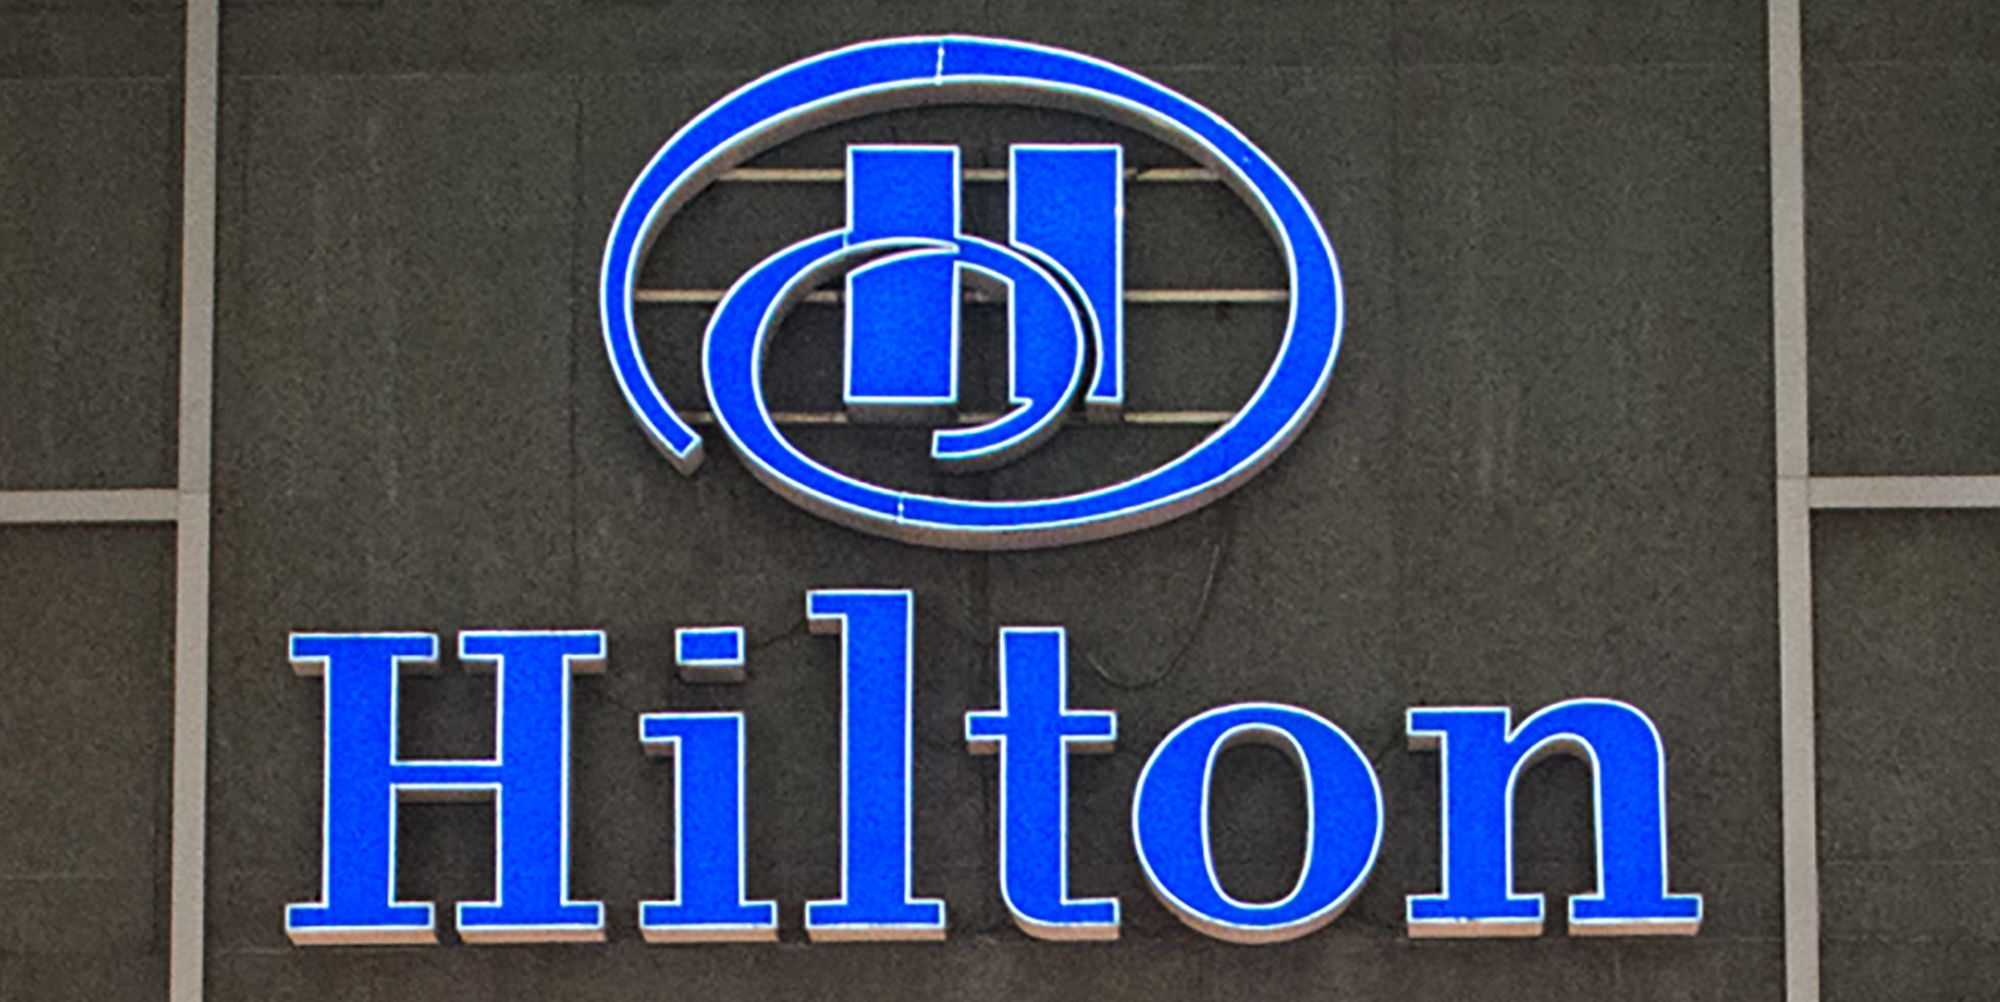 Hilton Is Hiring Work From Home Reservation Sales Specialist Jobs In 29  States